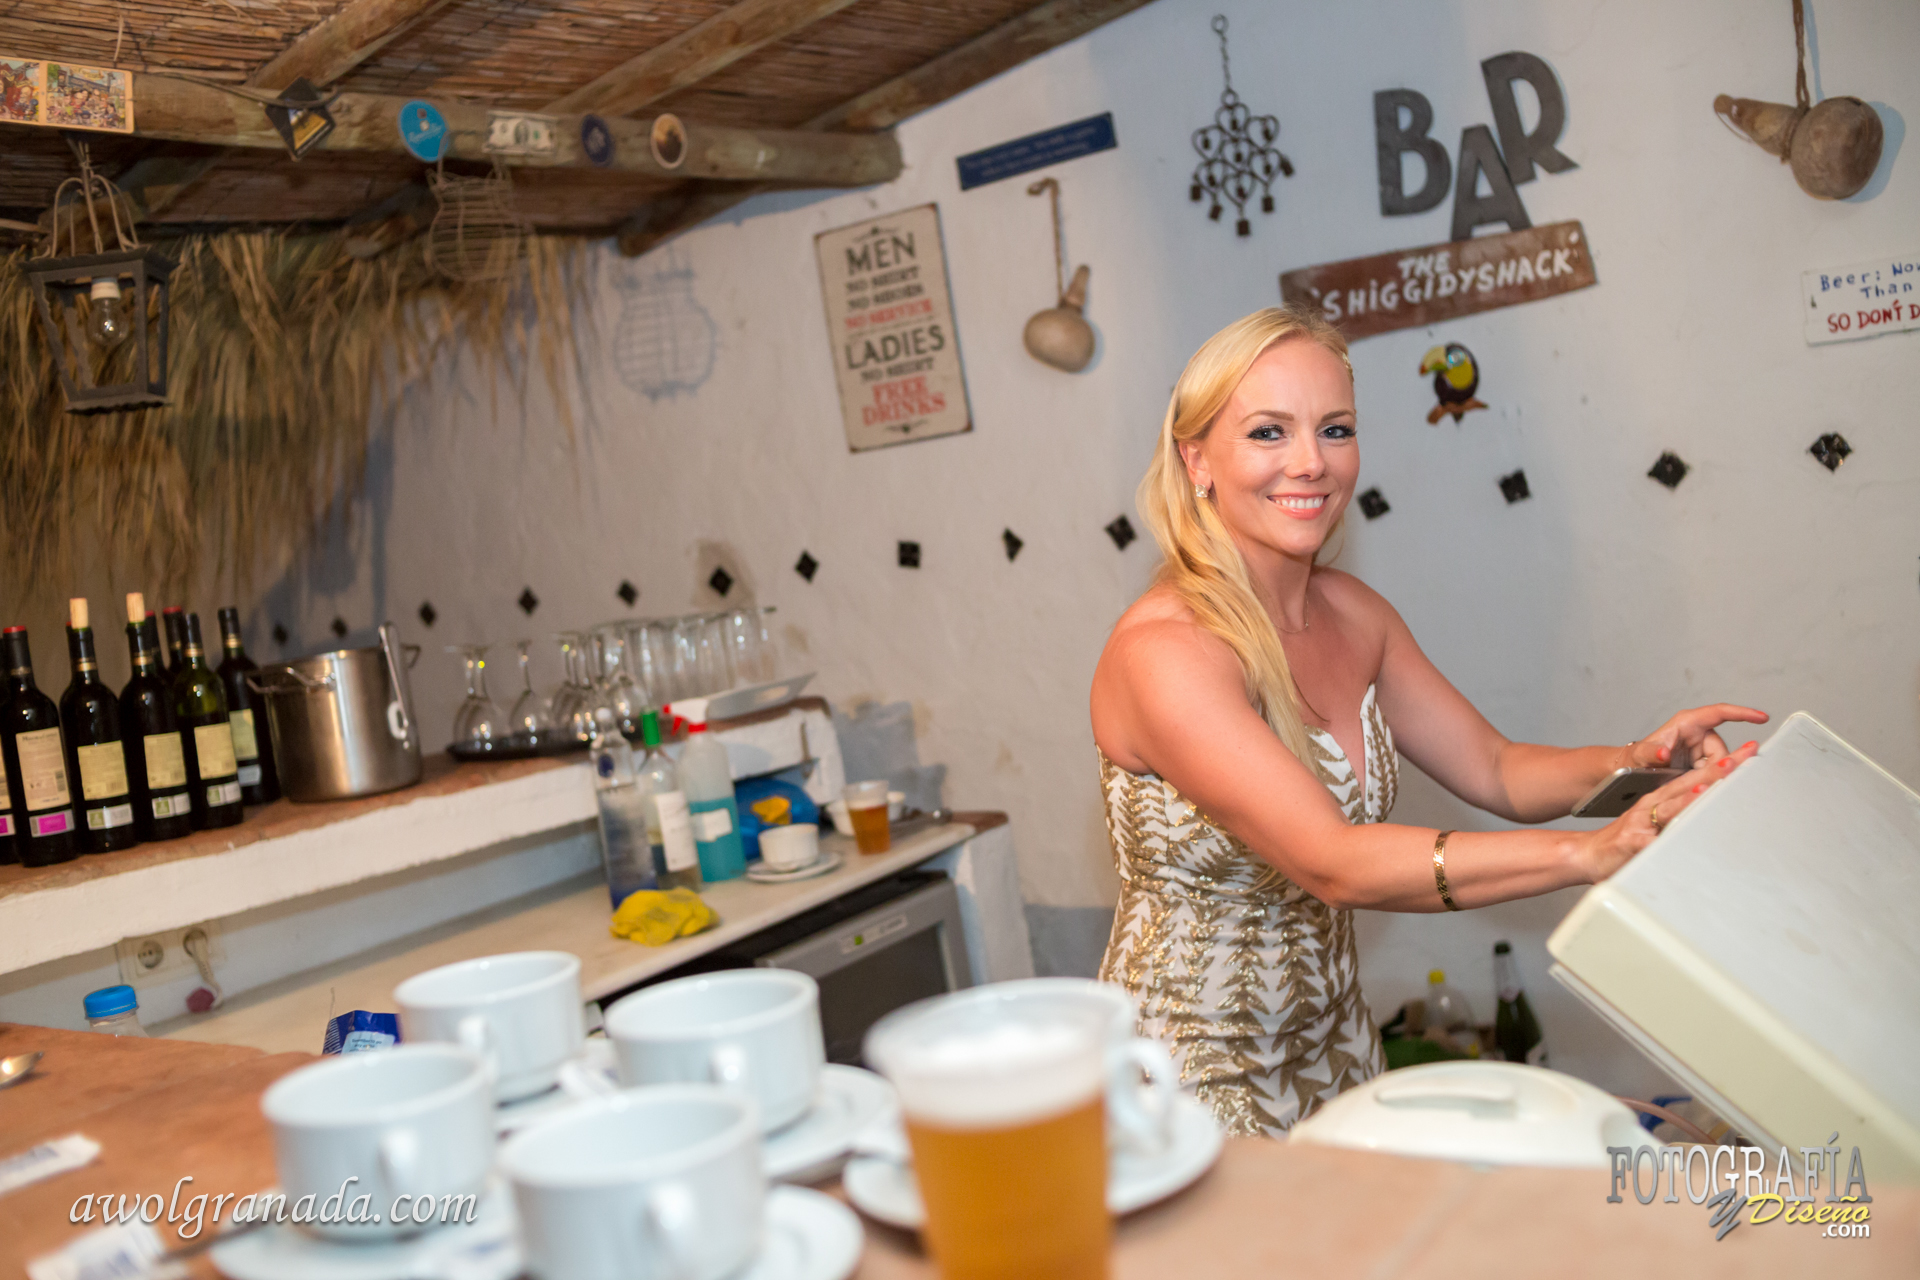 The Bride behind the bar